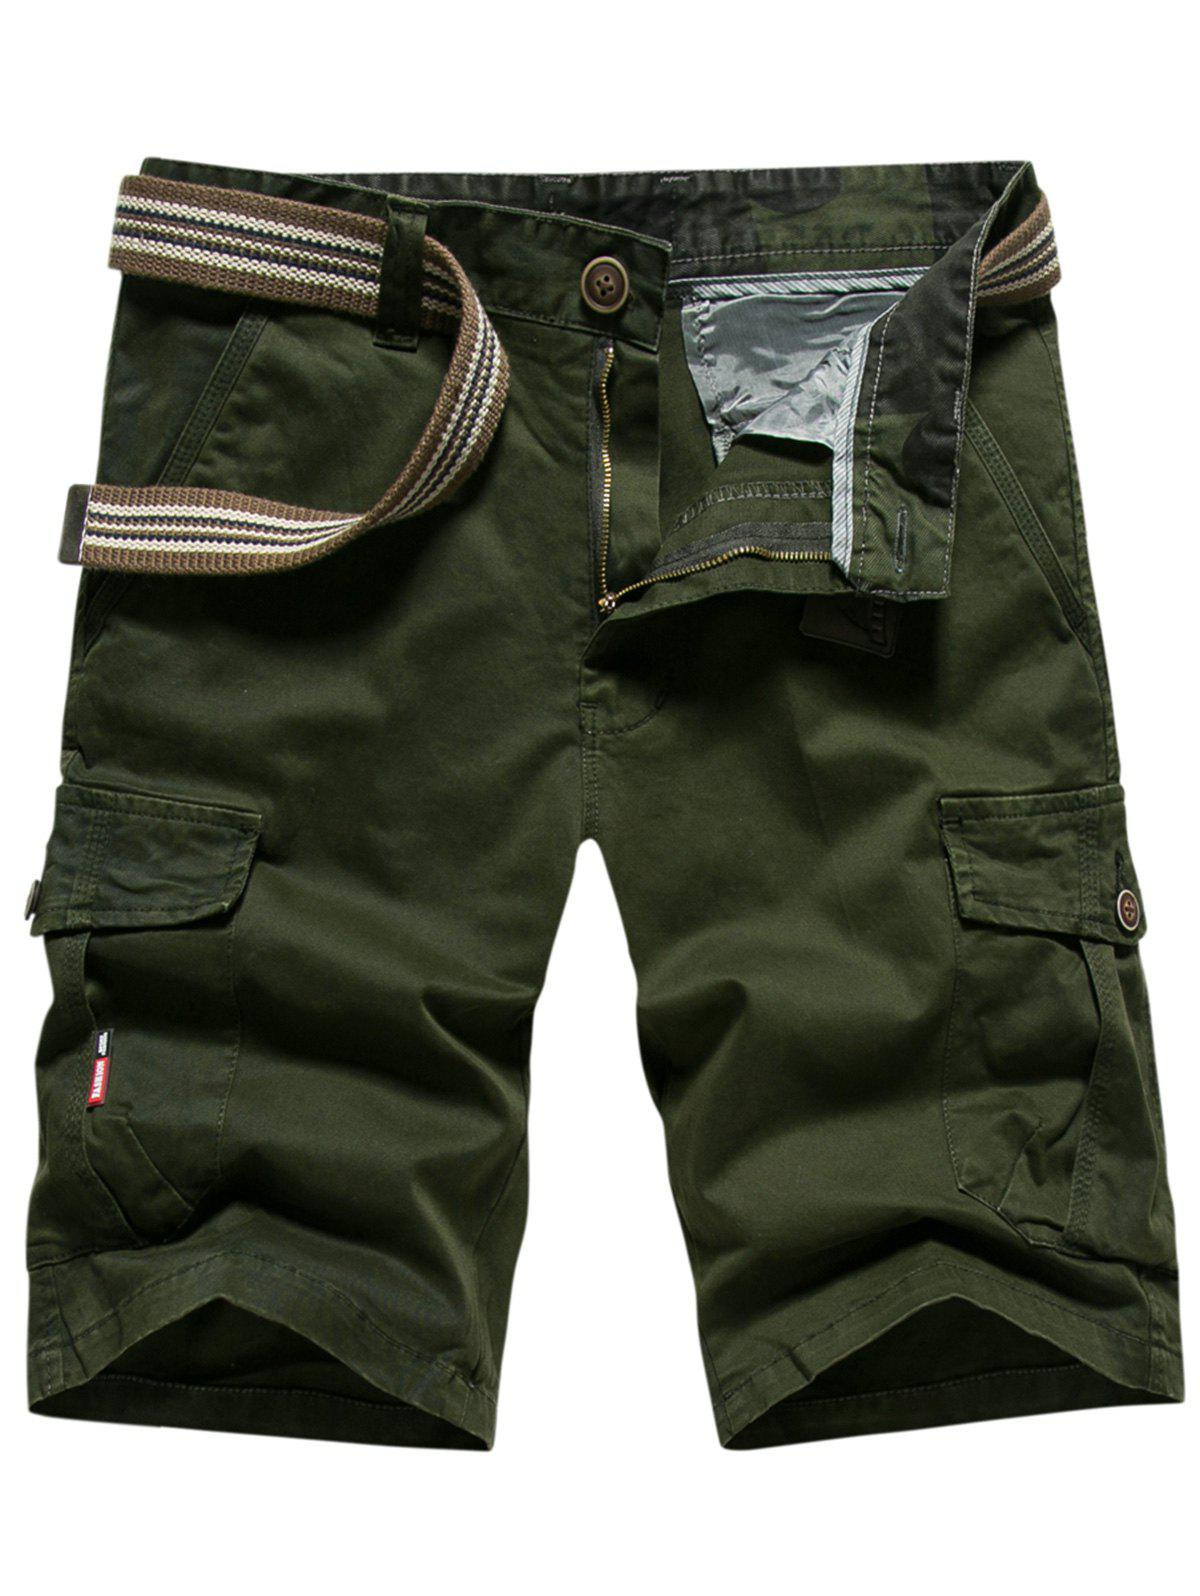 Outdoor Wear Lightweight Cargo Shorts - ARMY GREEN 34